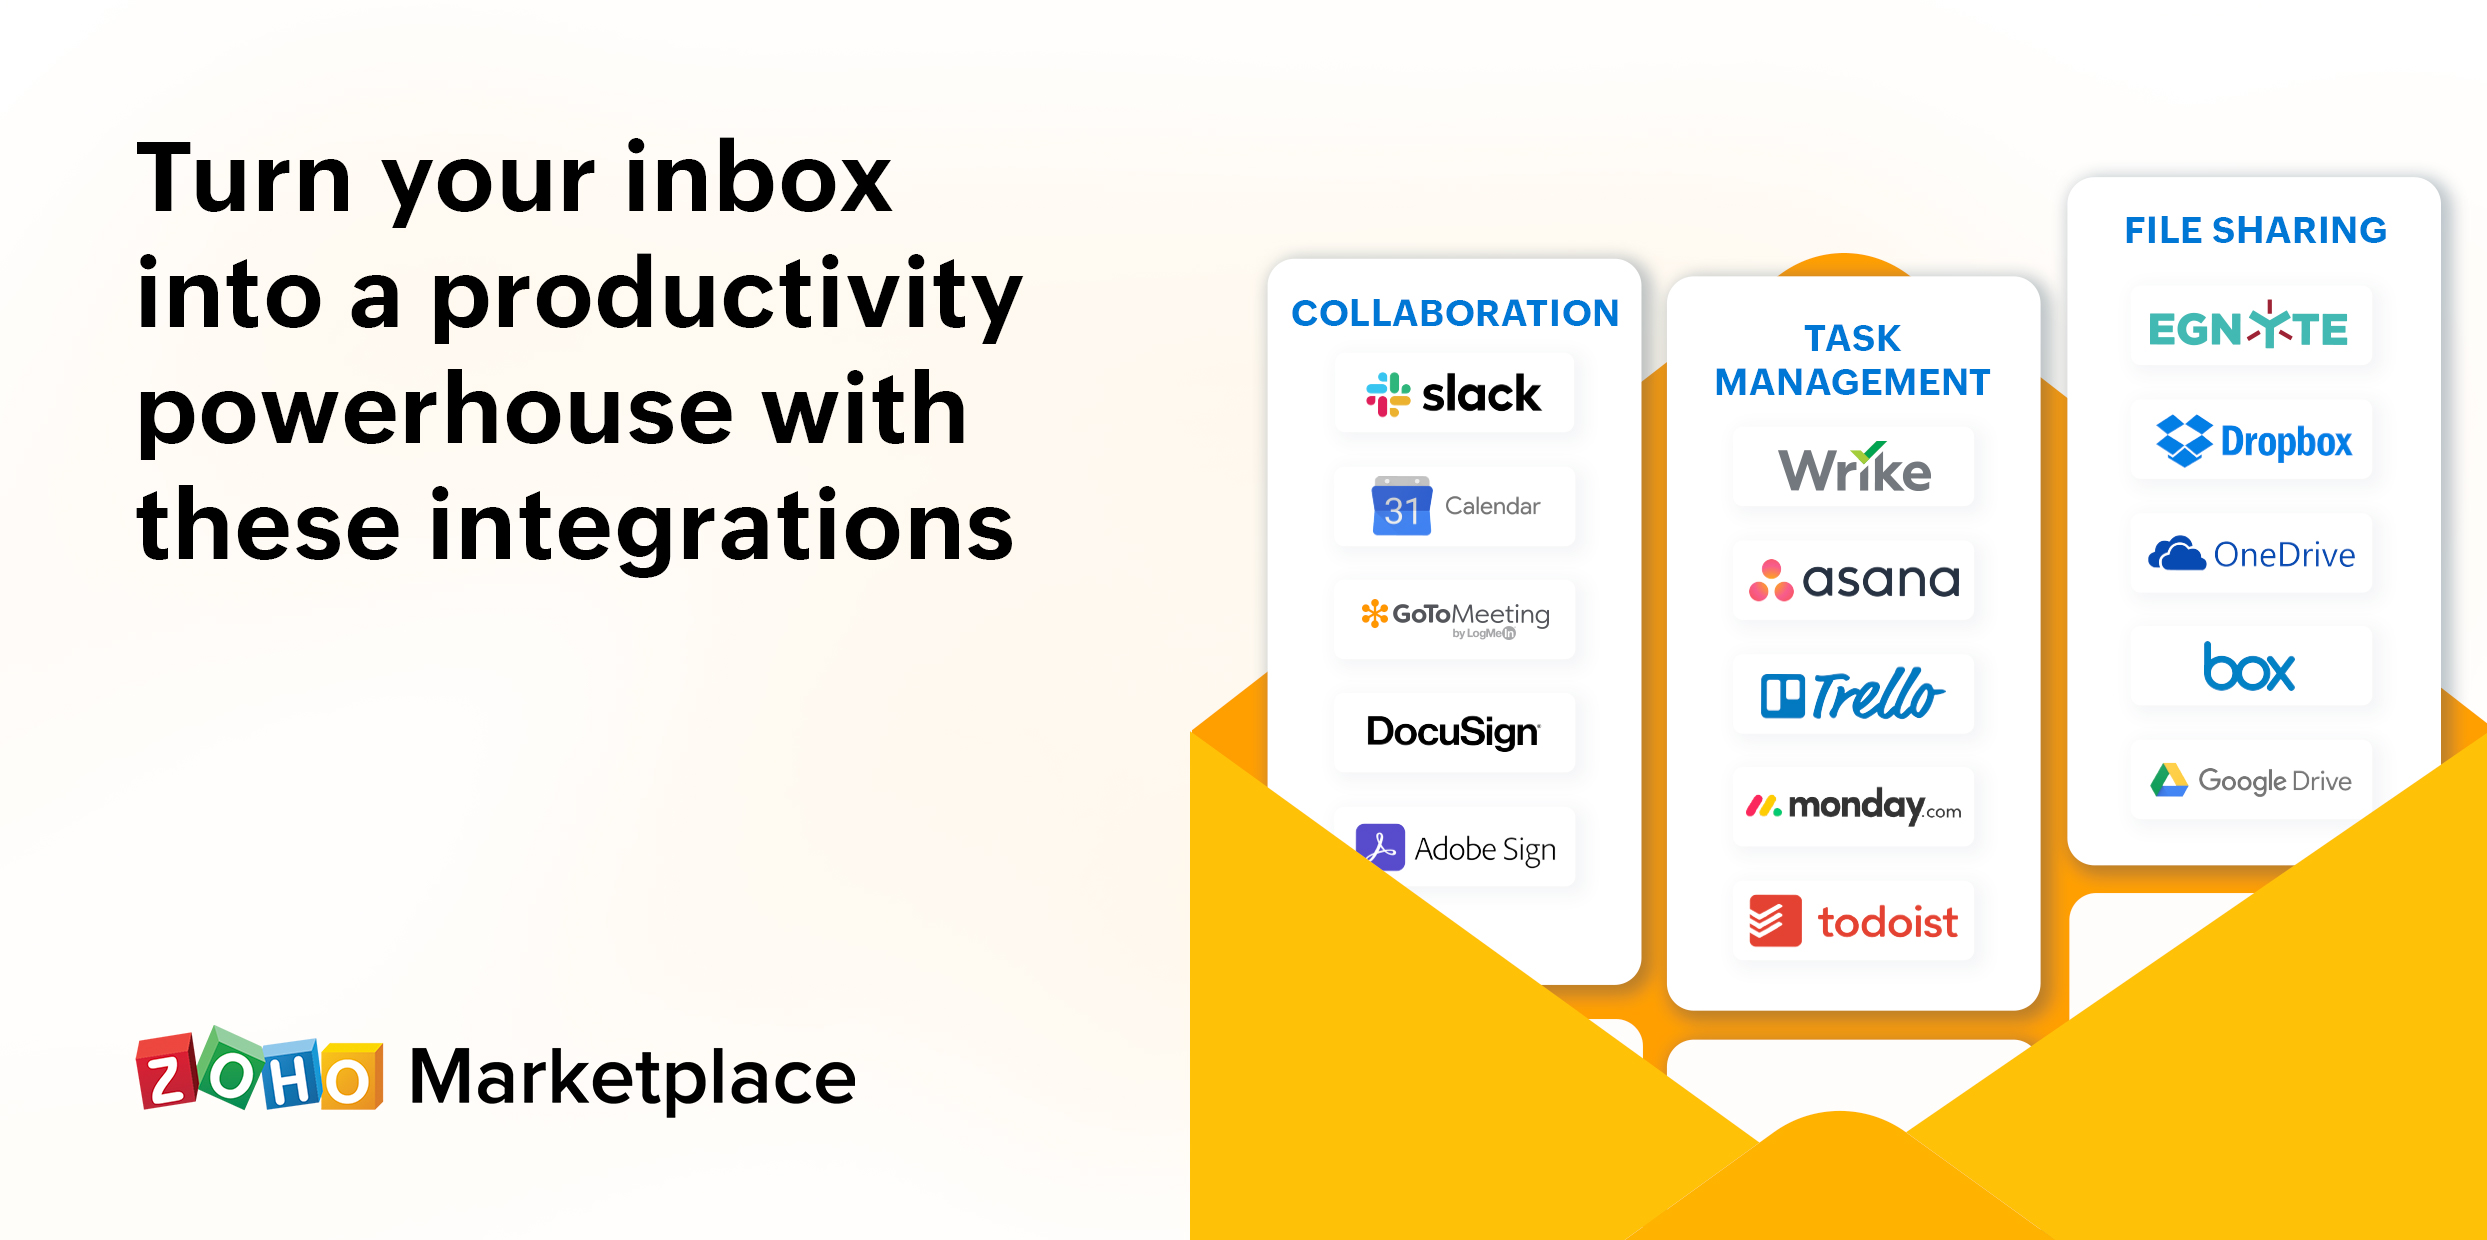 Turn your inbox into a productivity powerhouse with these integrations